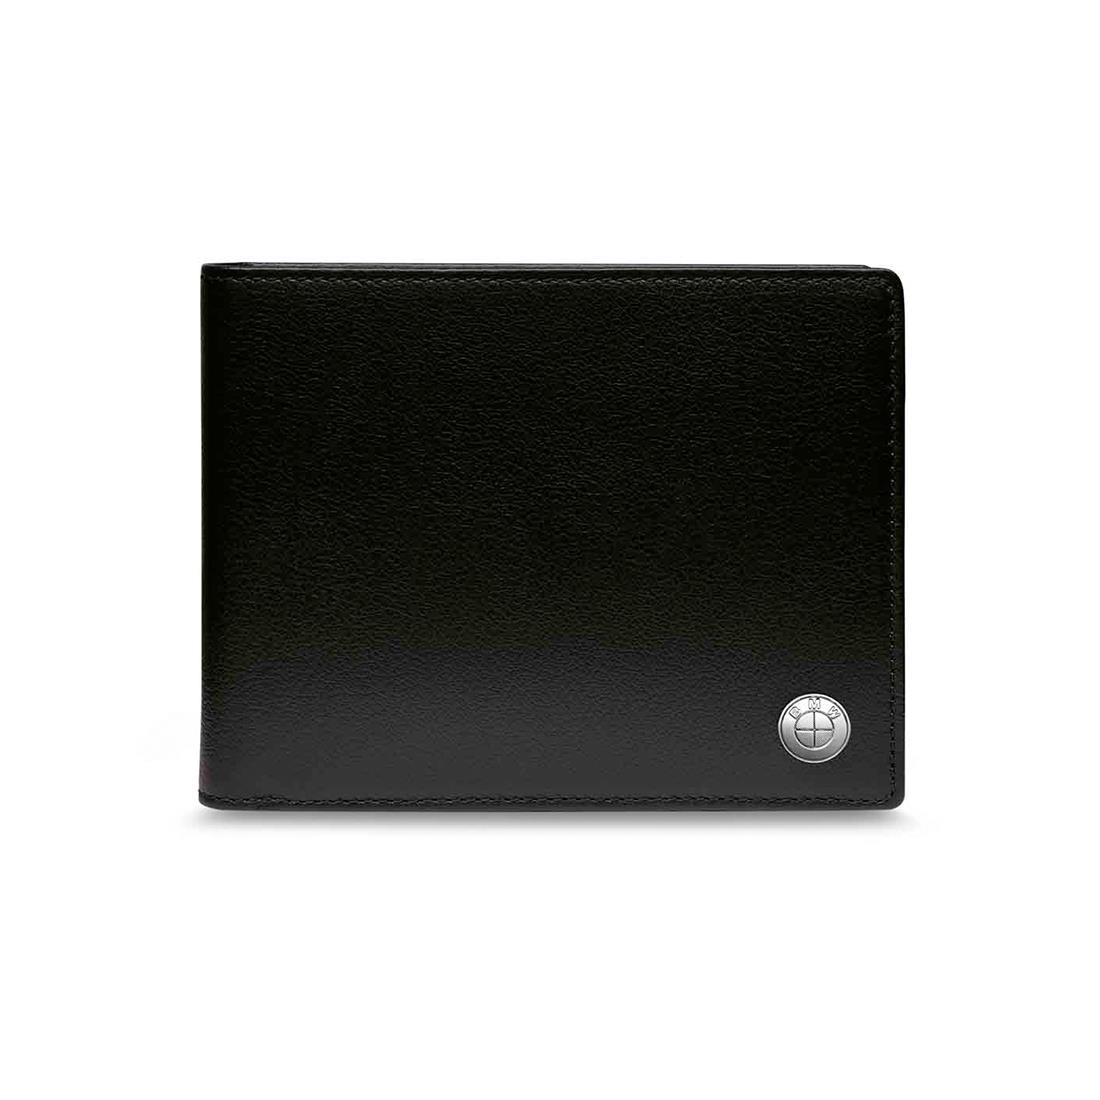 BMW WALLET WITHOUT COIN POUCH, MENS